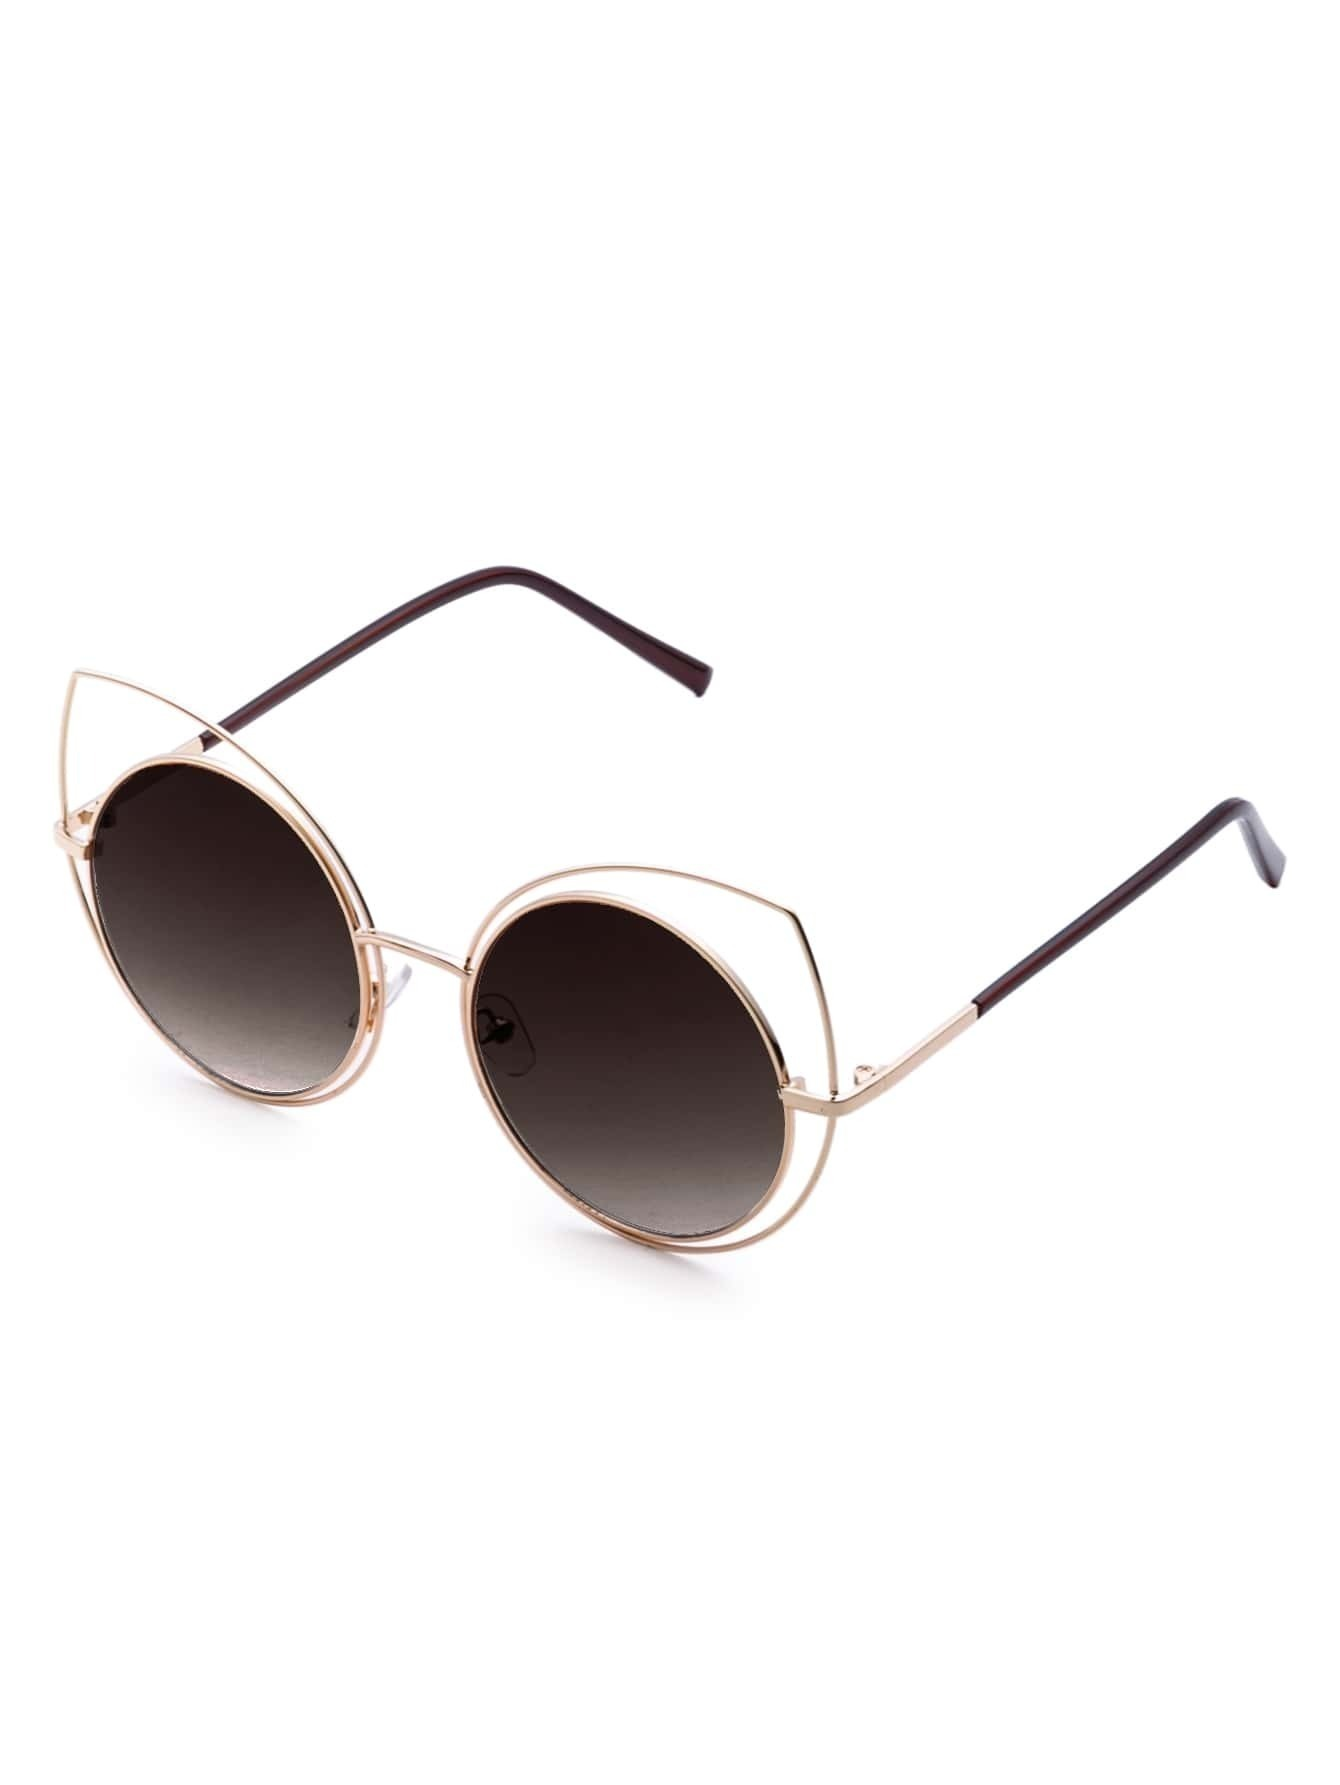 Gold Frame Brwon Lens Cat Eye Sunglasses